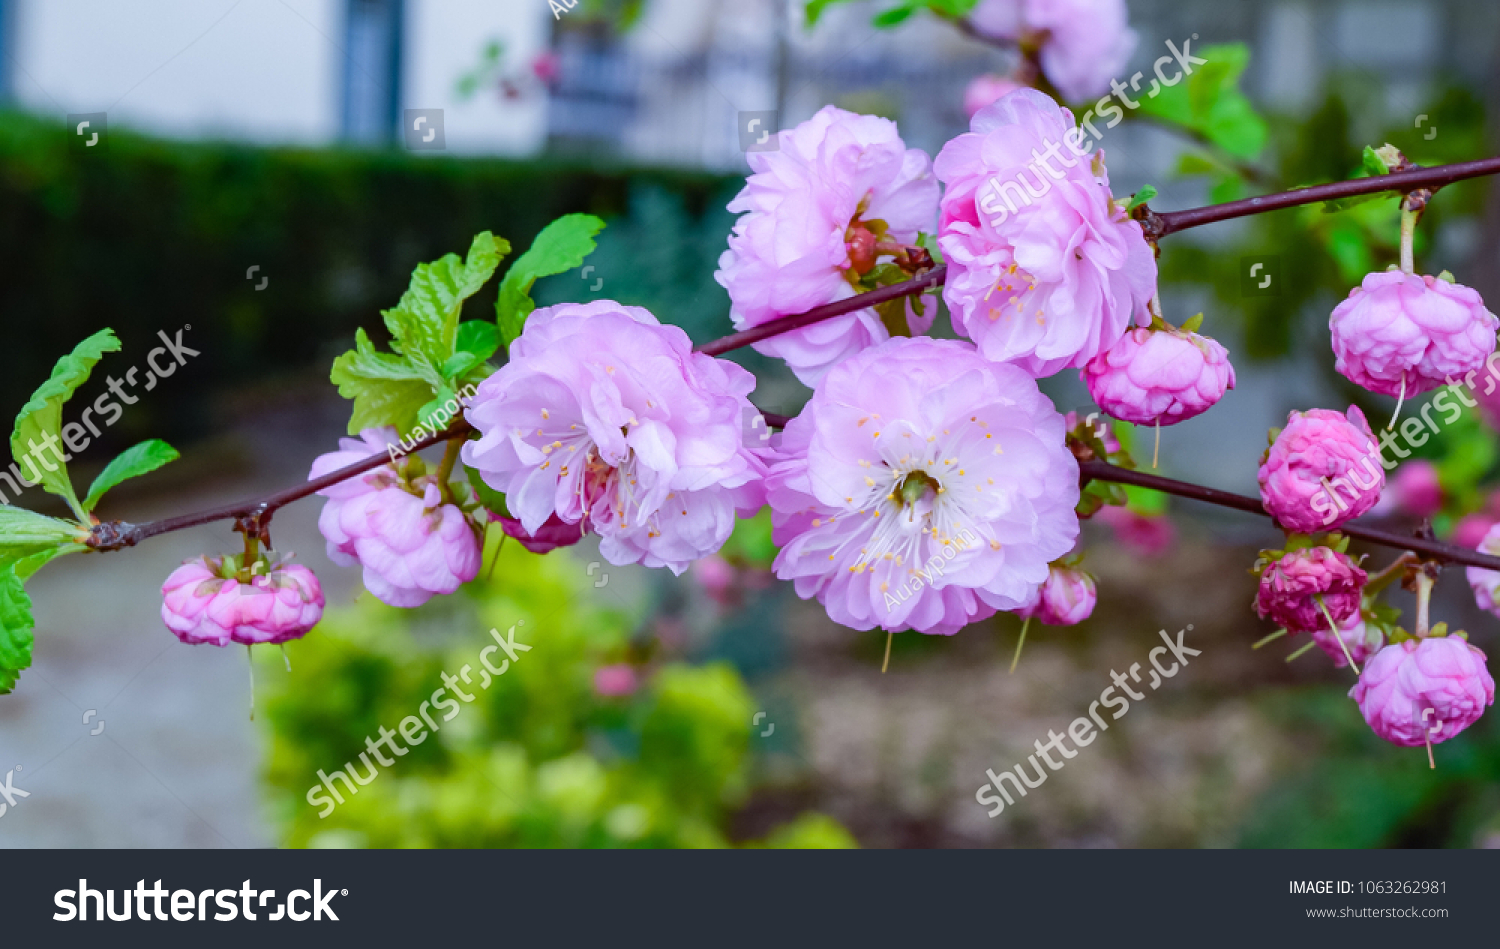 Beautiful pink flowers spring season started stock photo edit now beautiful pink flowers of spring season started clean air different colors in the garden mightylinksfo